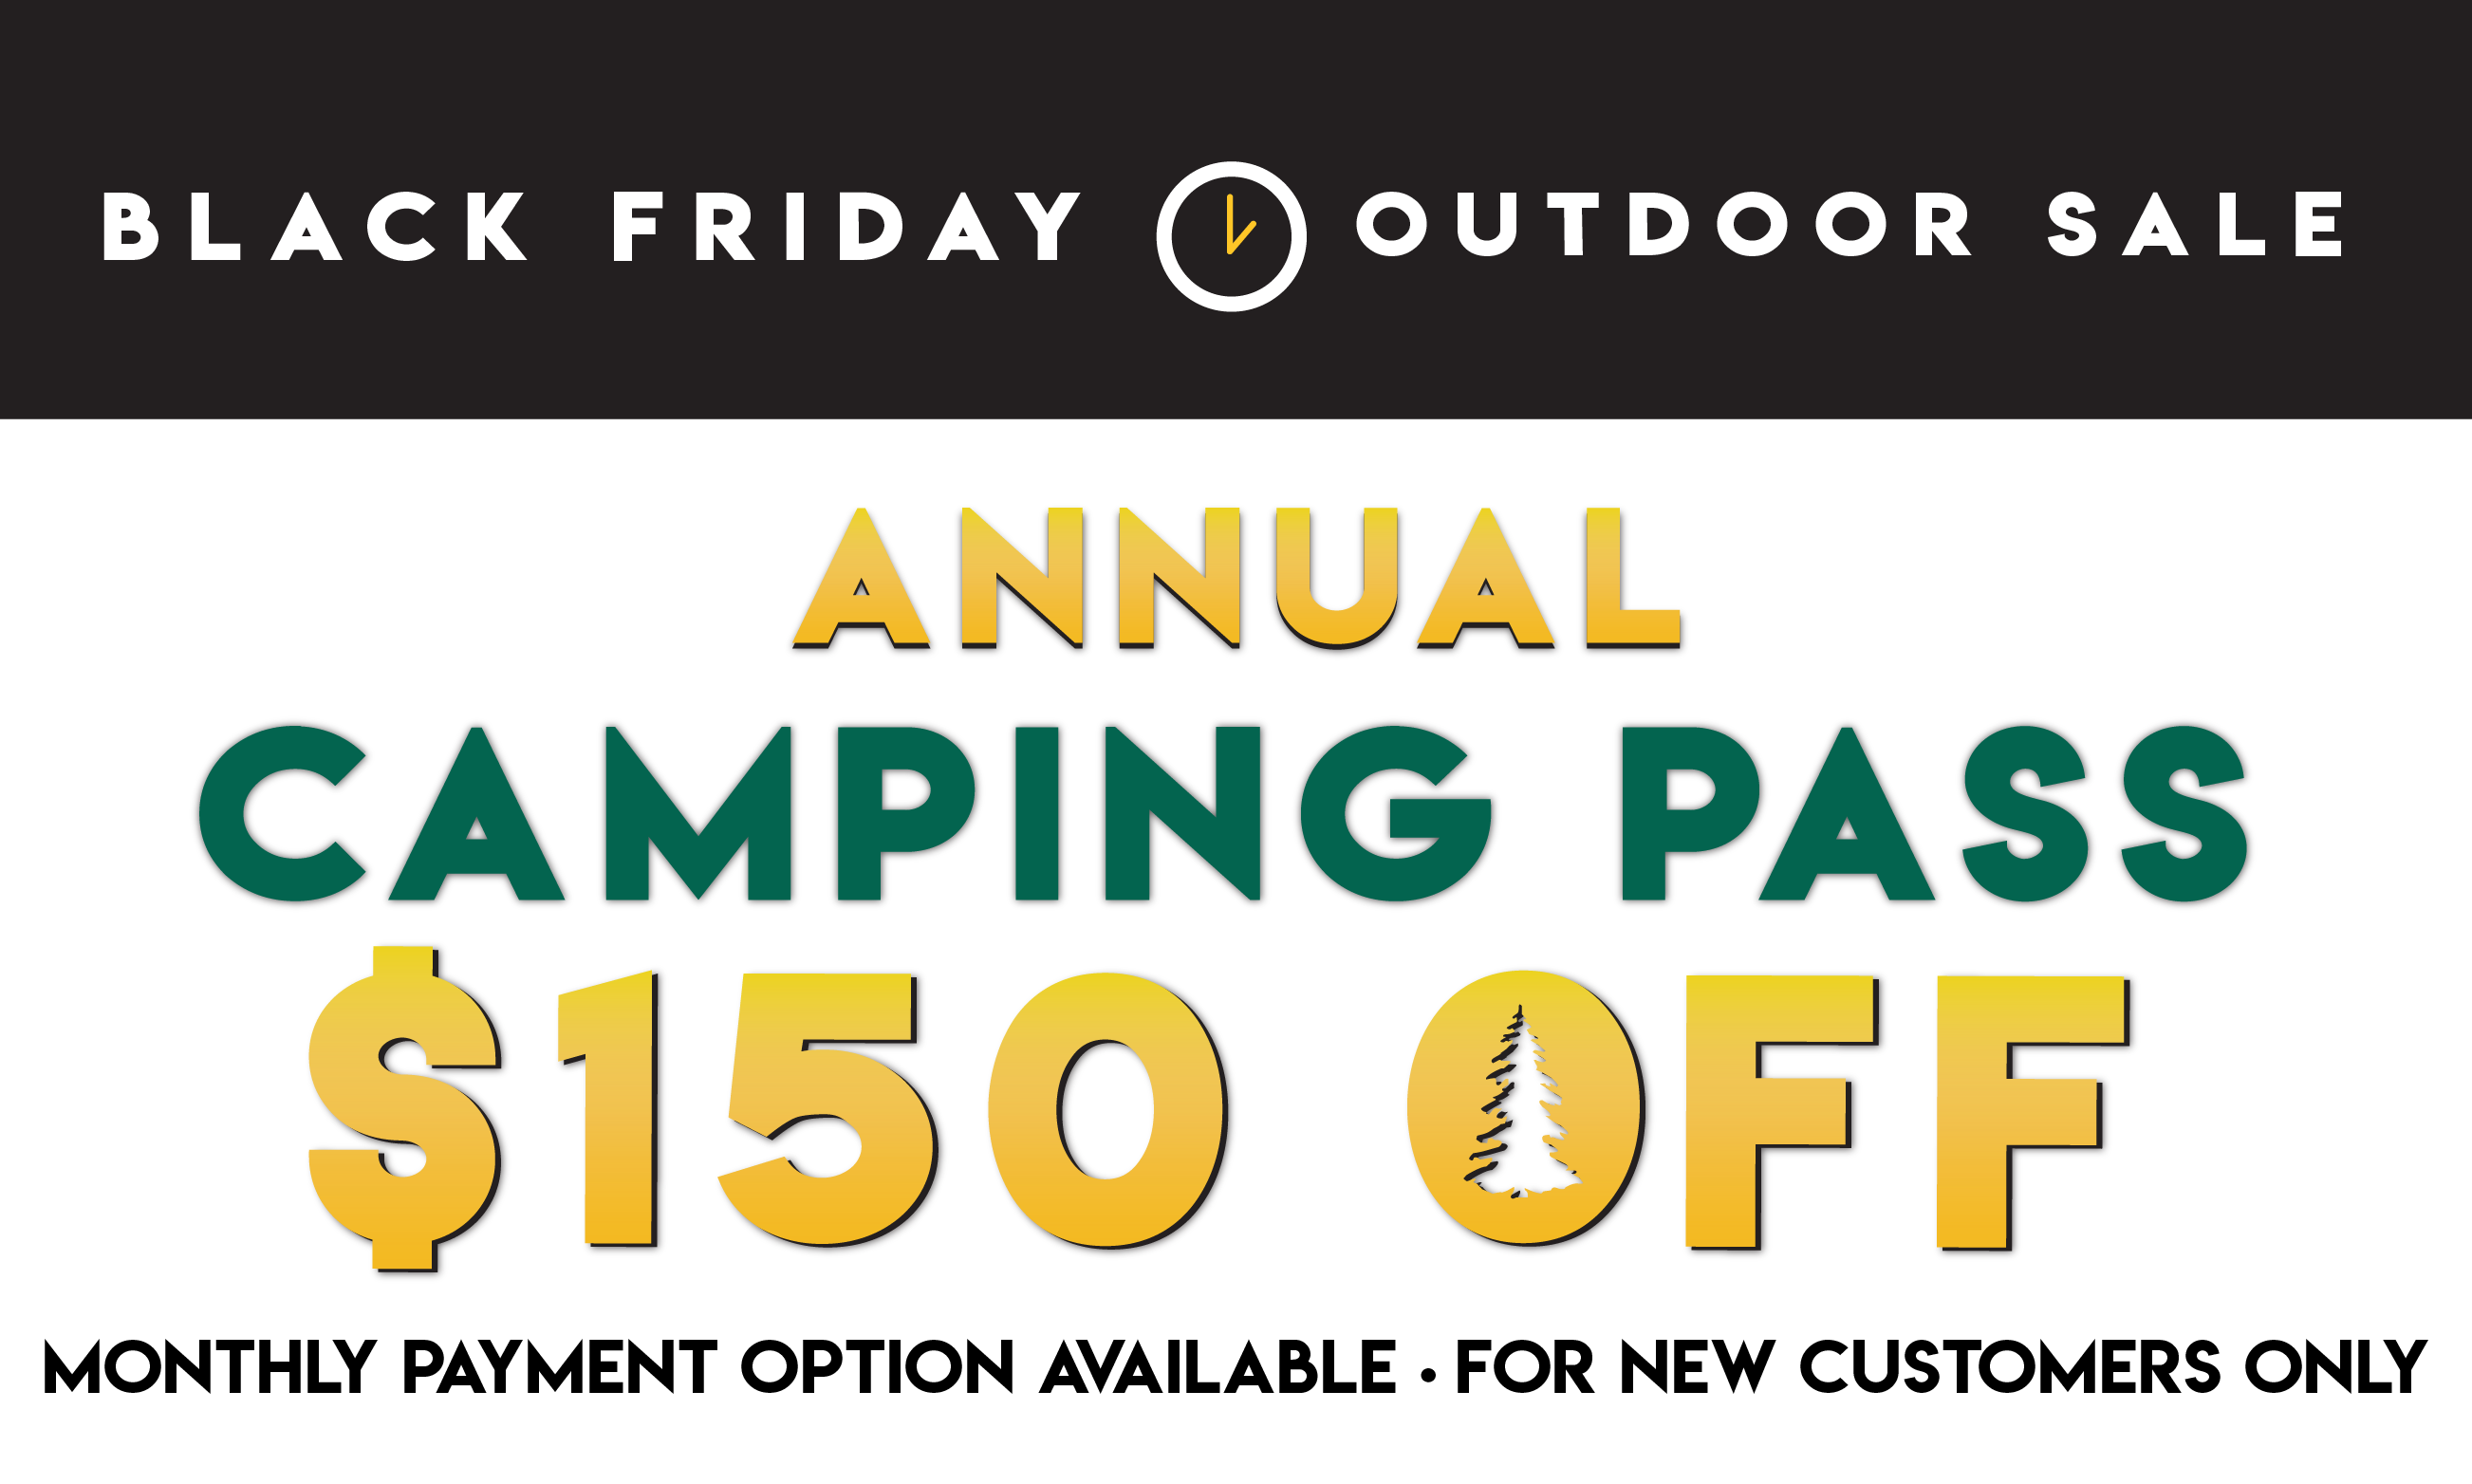 Black Friday Flash Sale! $150 OFF Thousand Trails Camping Pass